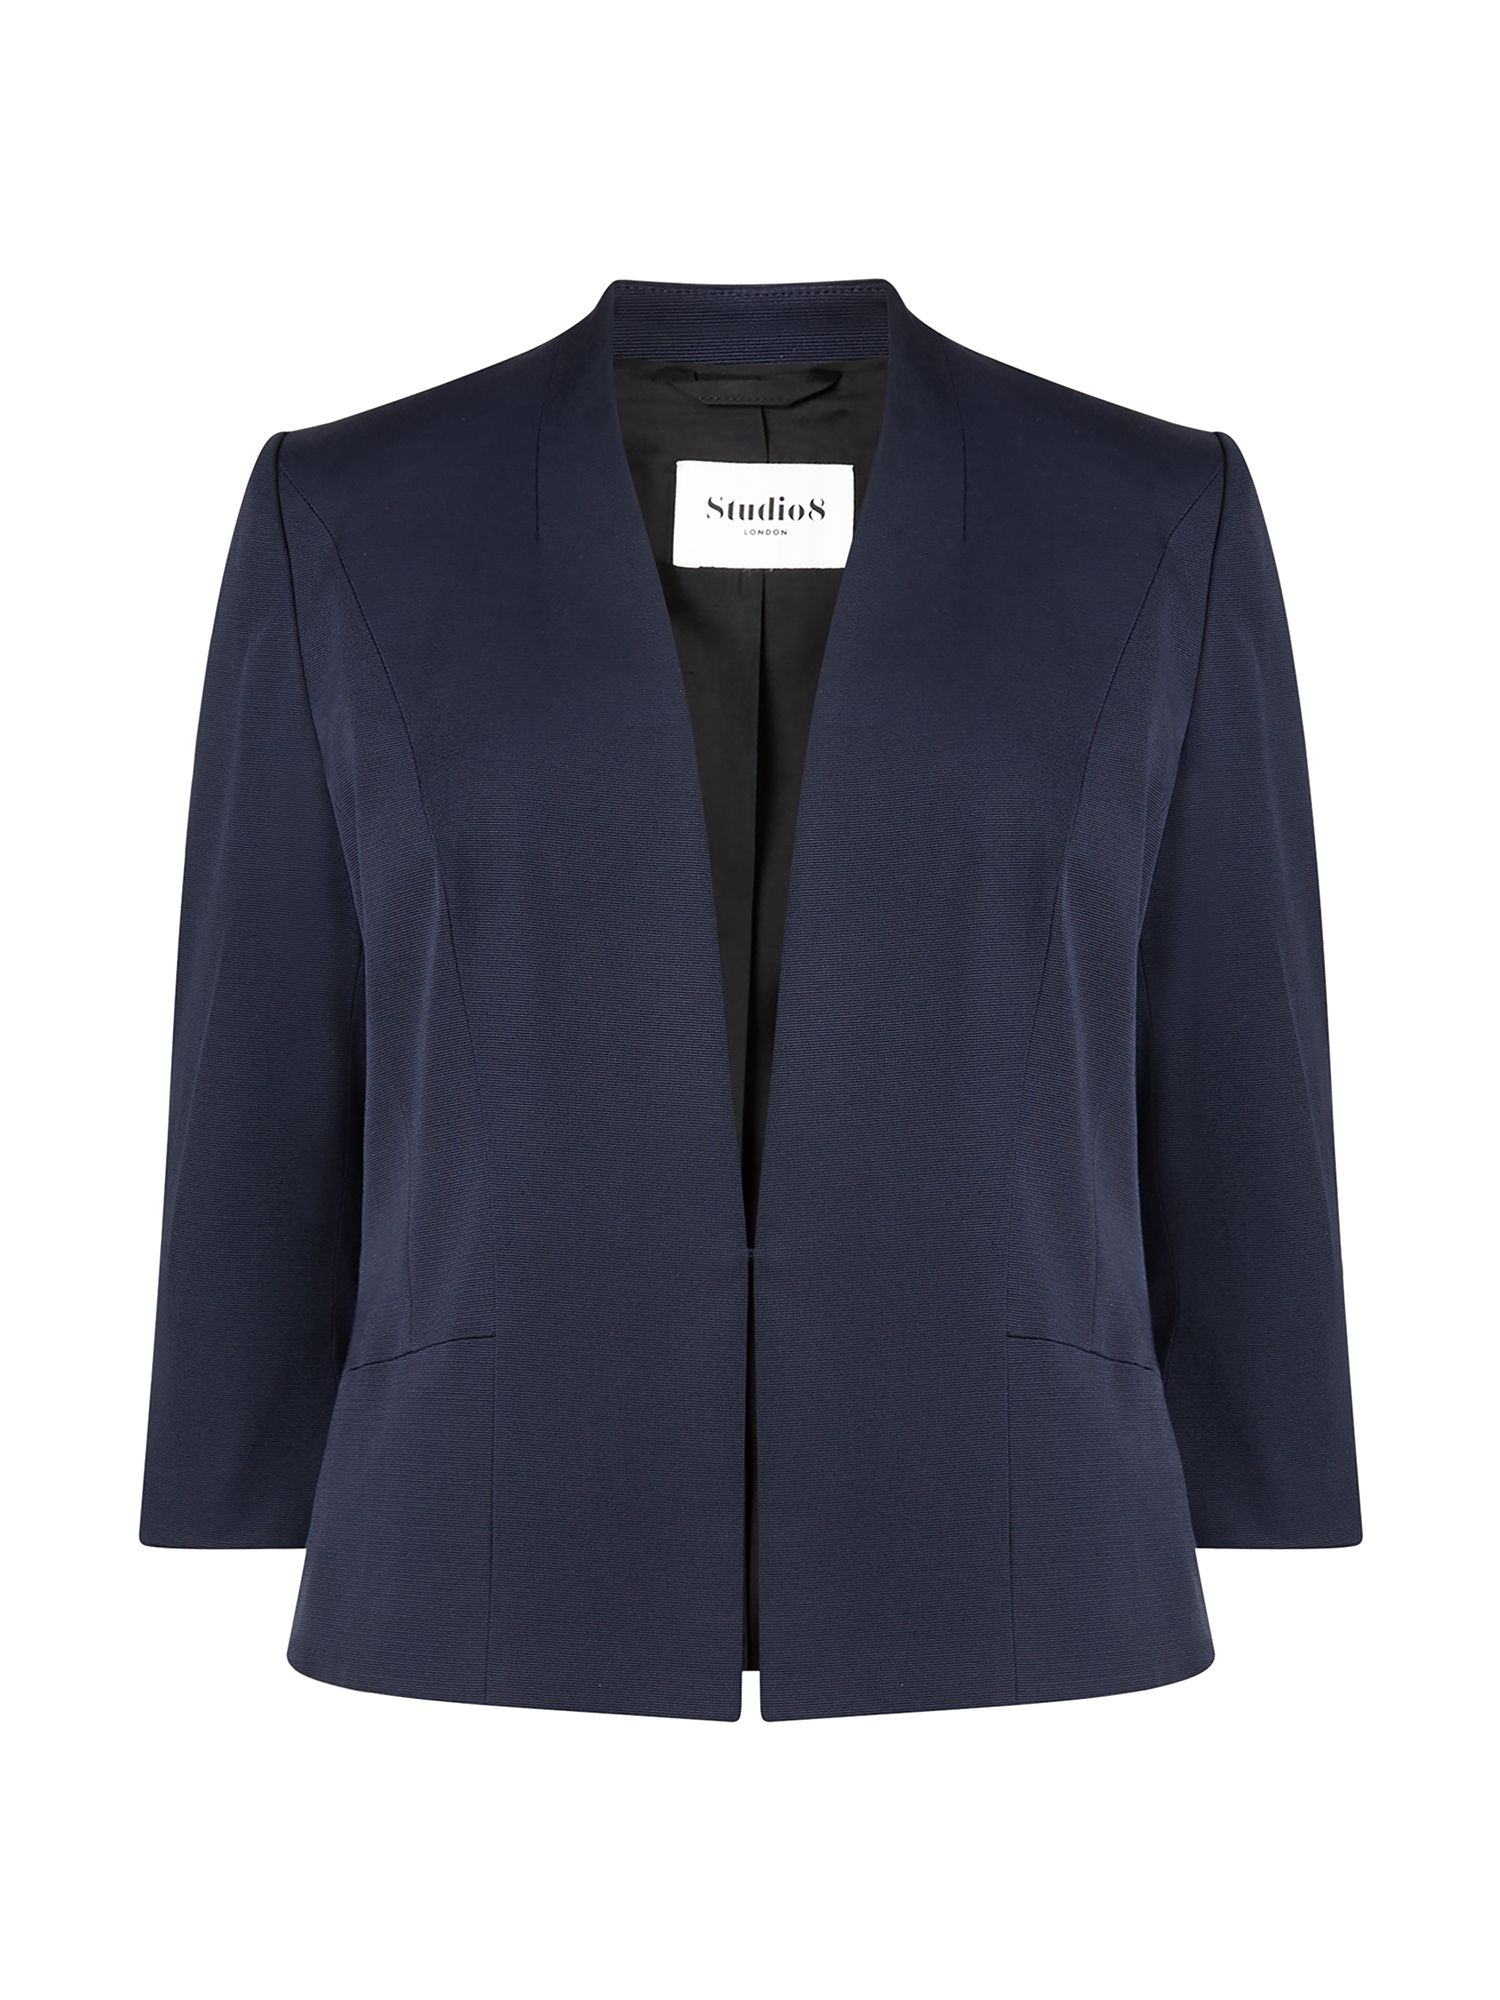 Studio 8 Priya Jacket, Blue